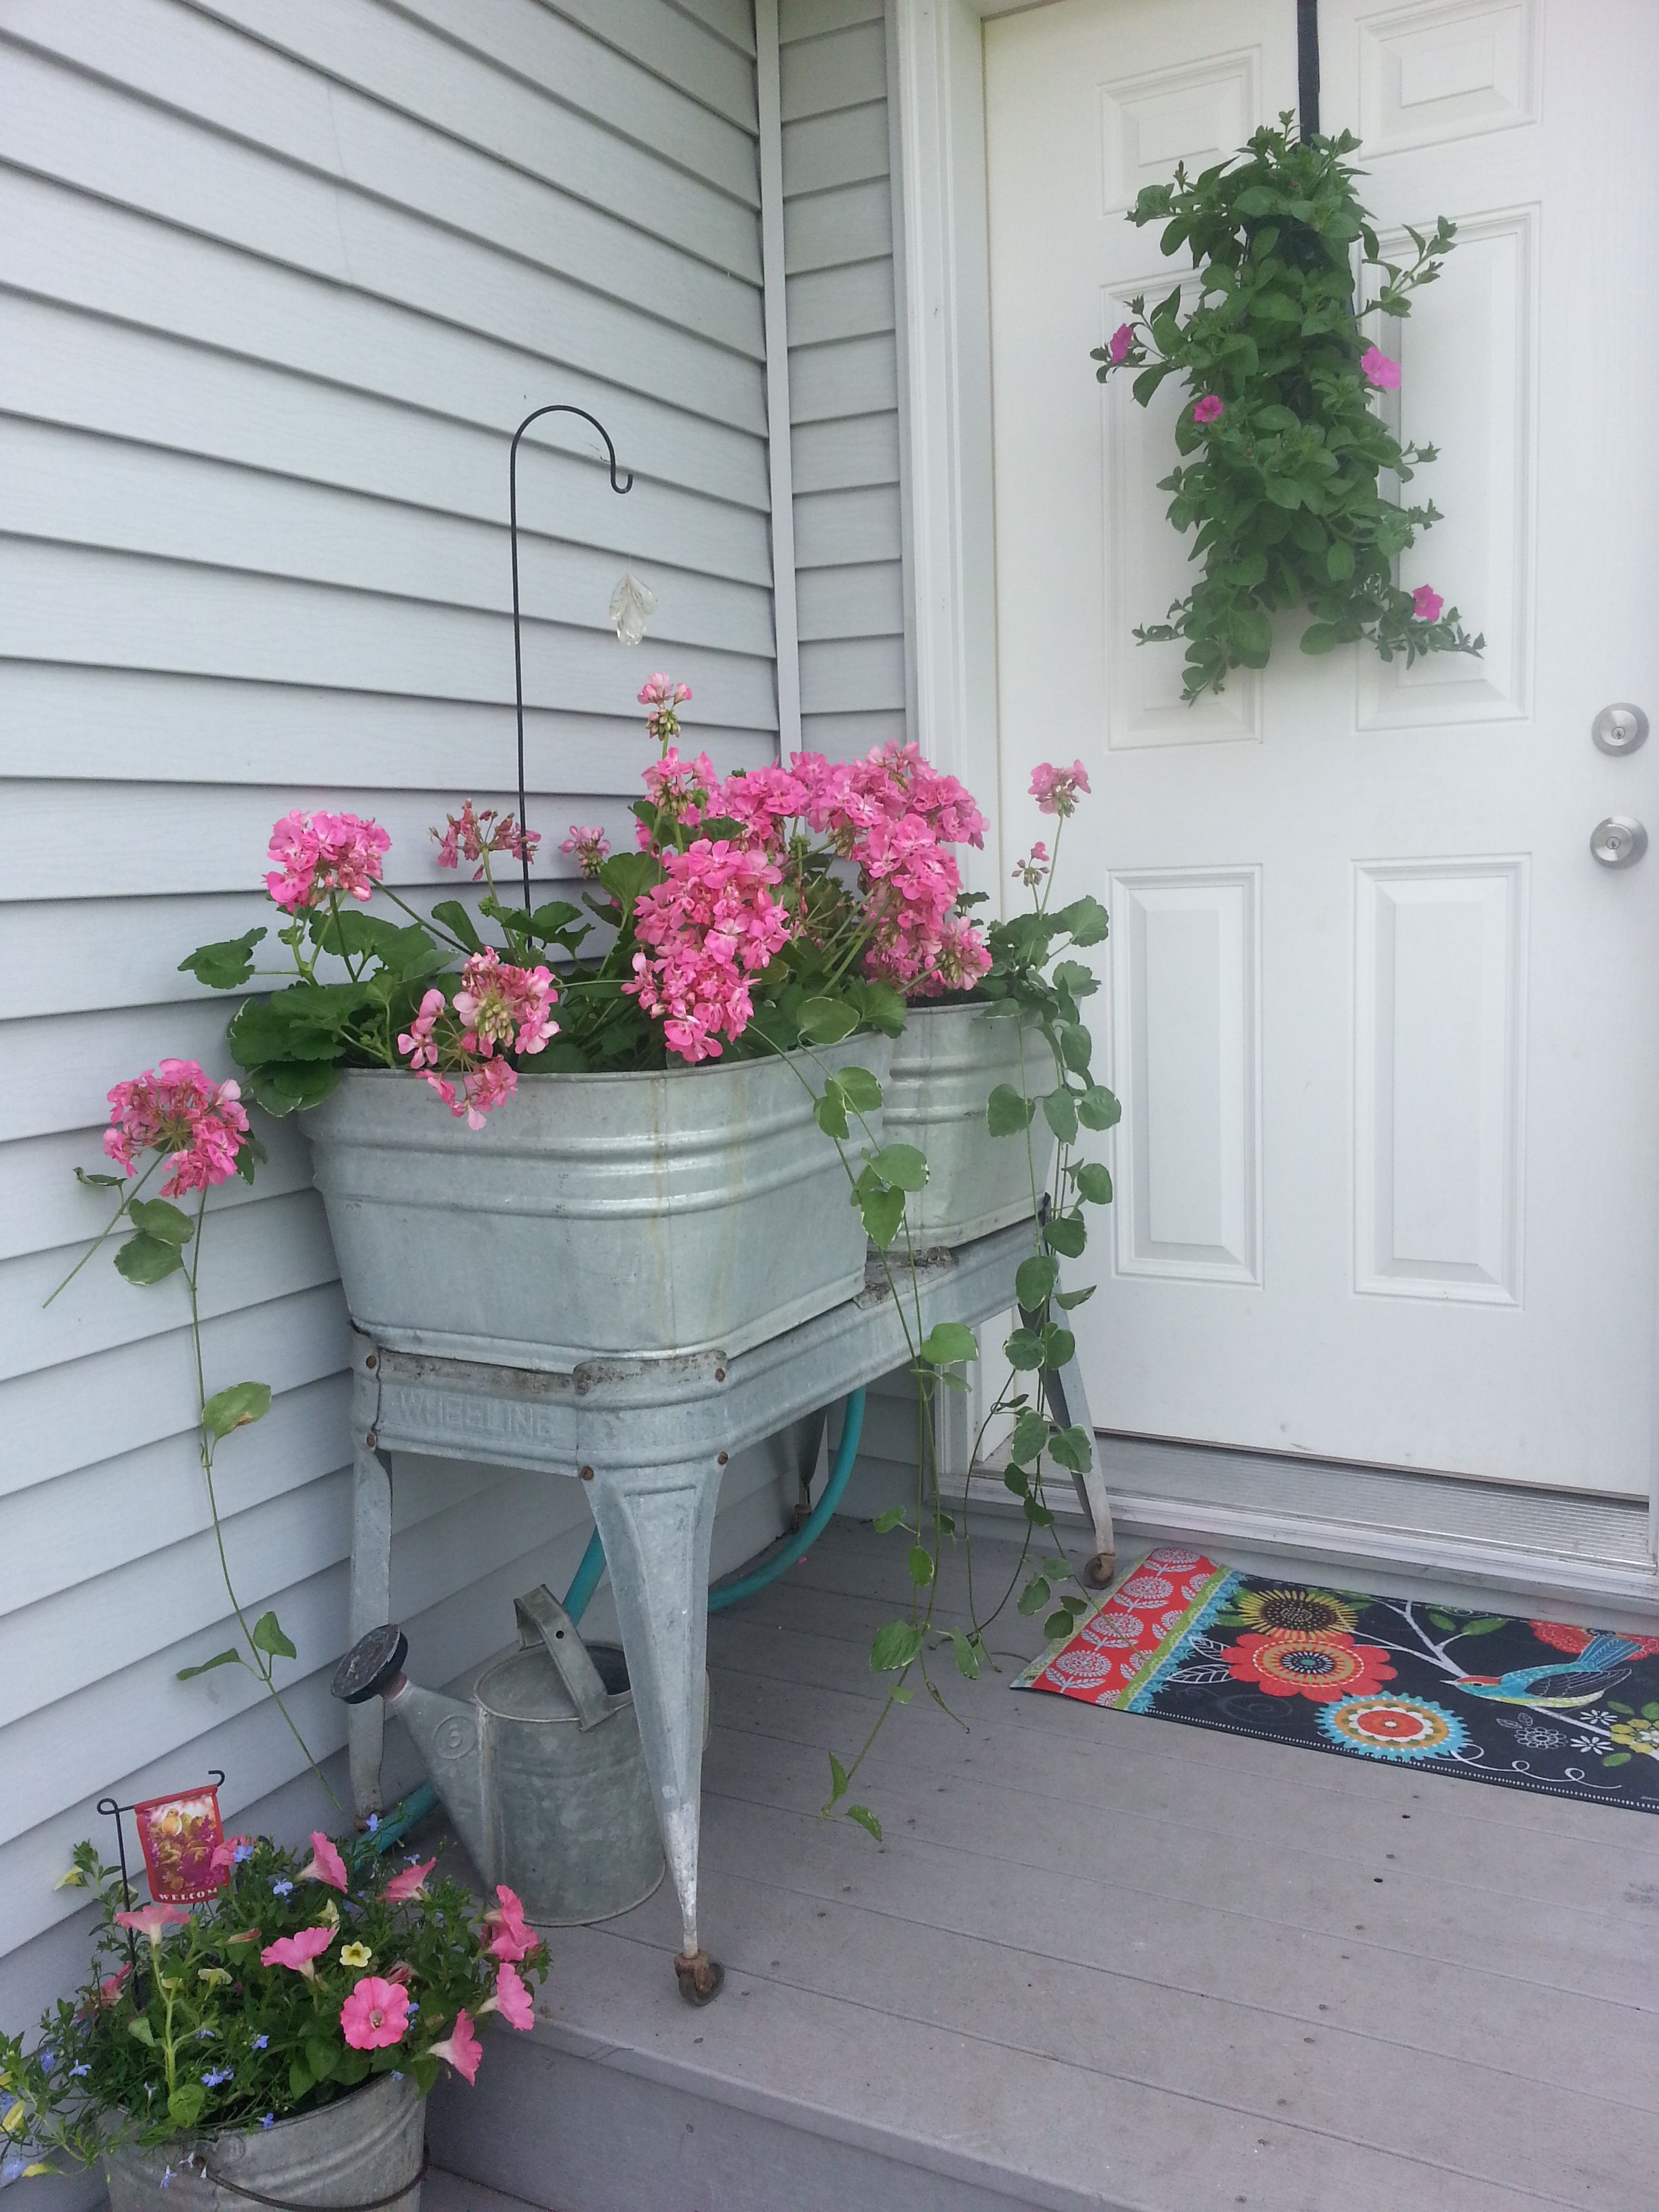 My Front Porch Decorated With Vintage Wash Tubs And